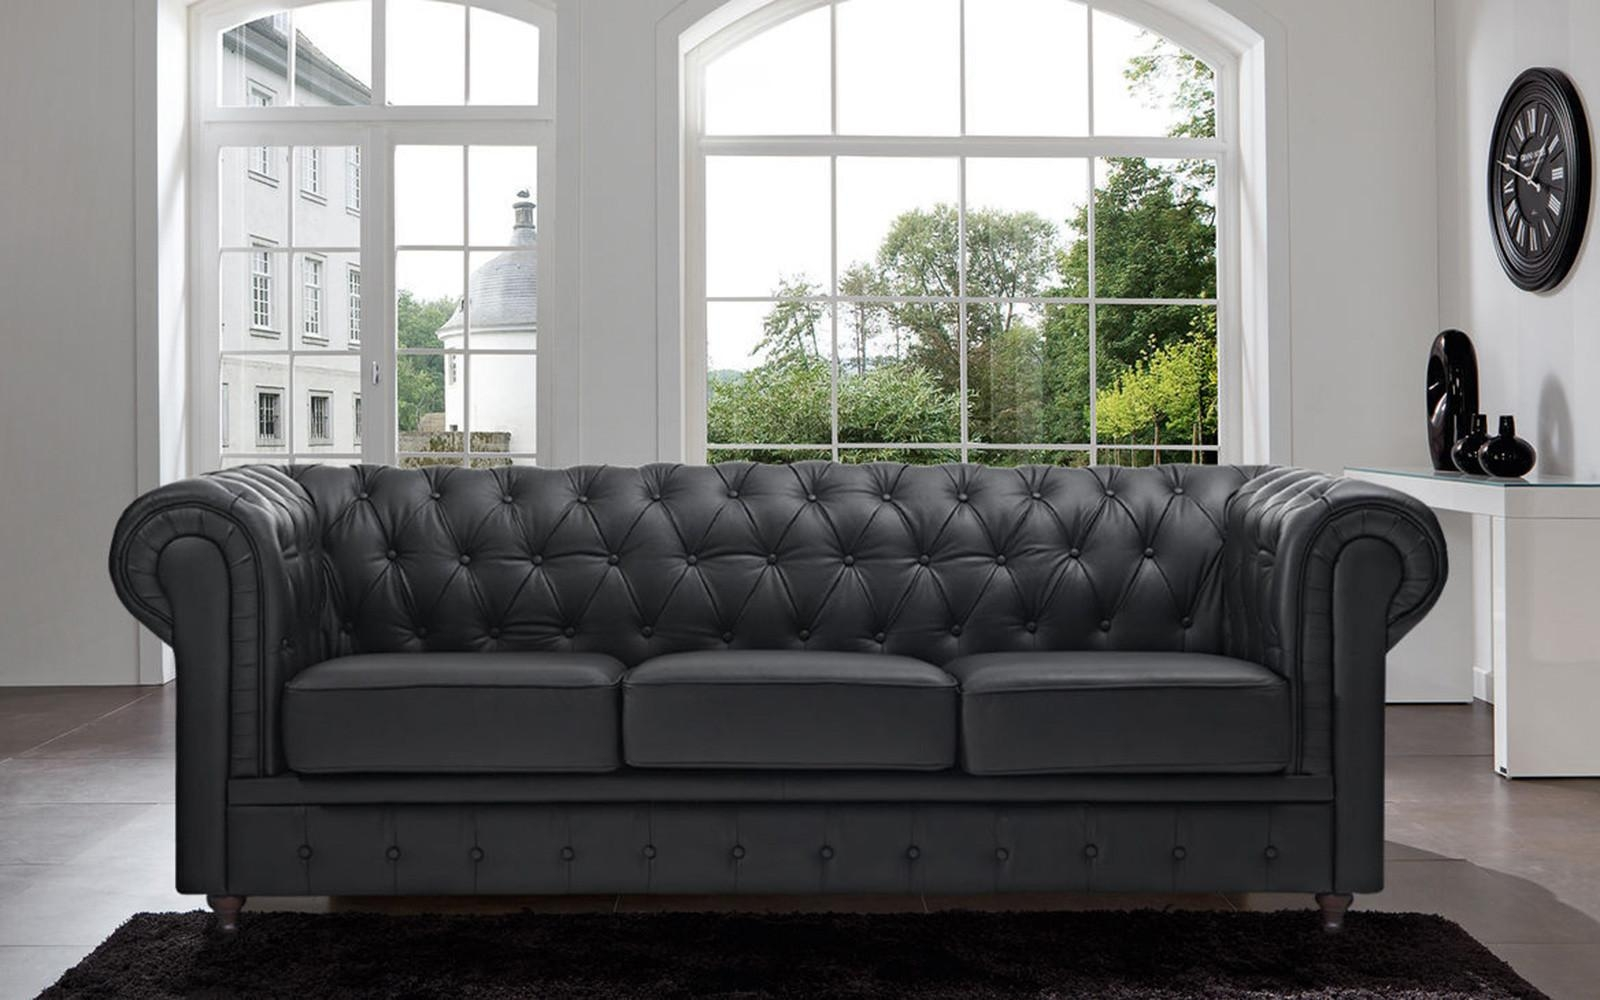 Classic Scroll Arm Tufted Bonded Leather Chesterfield Large Sofa Intended For Bonded Leather Sofas (View 15 of 20)